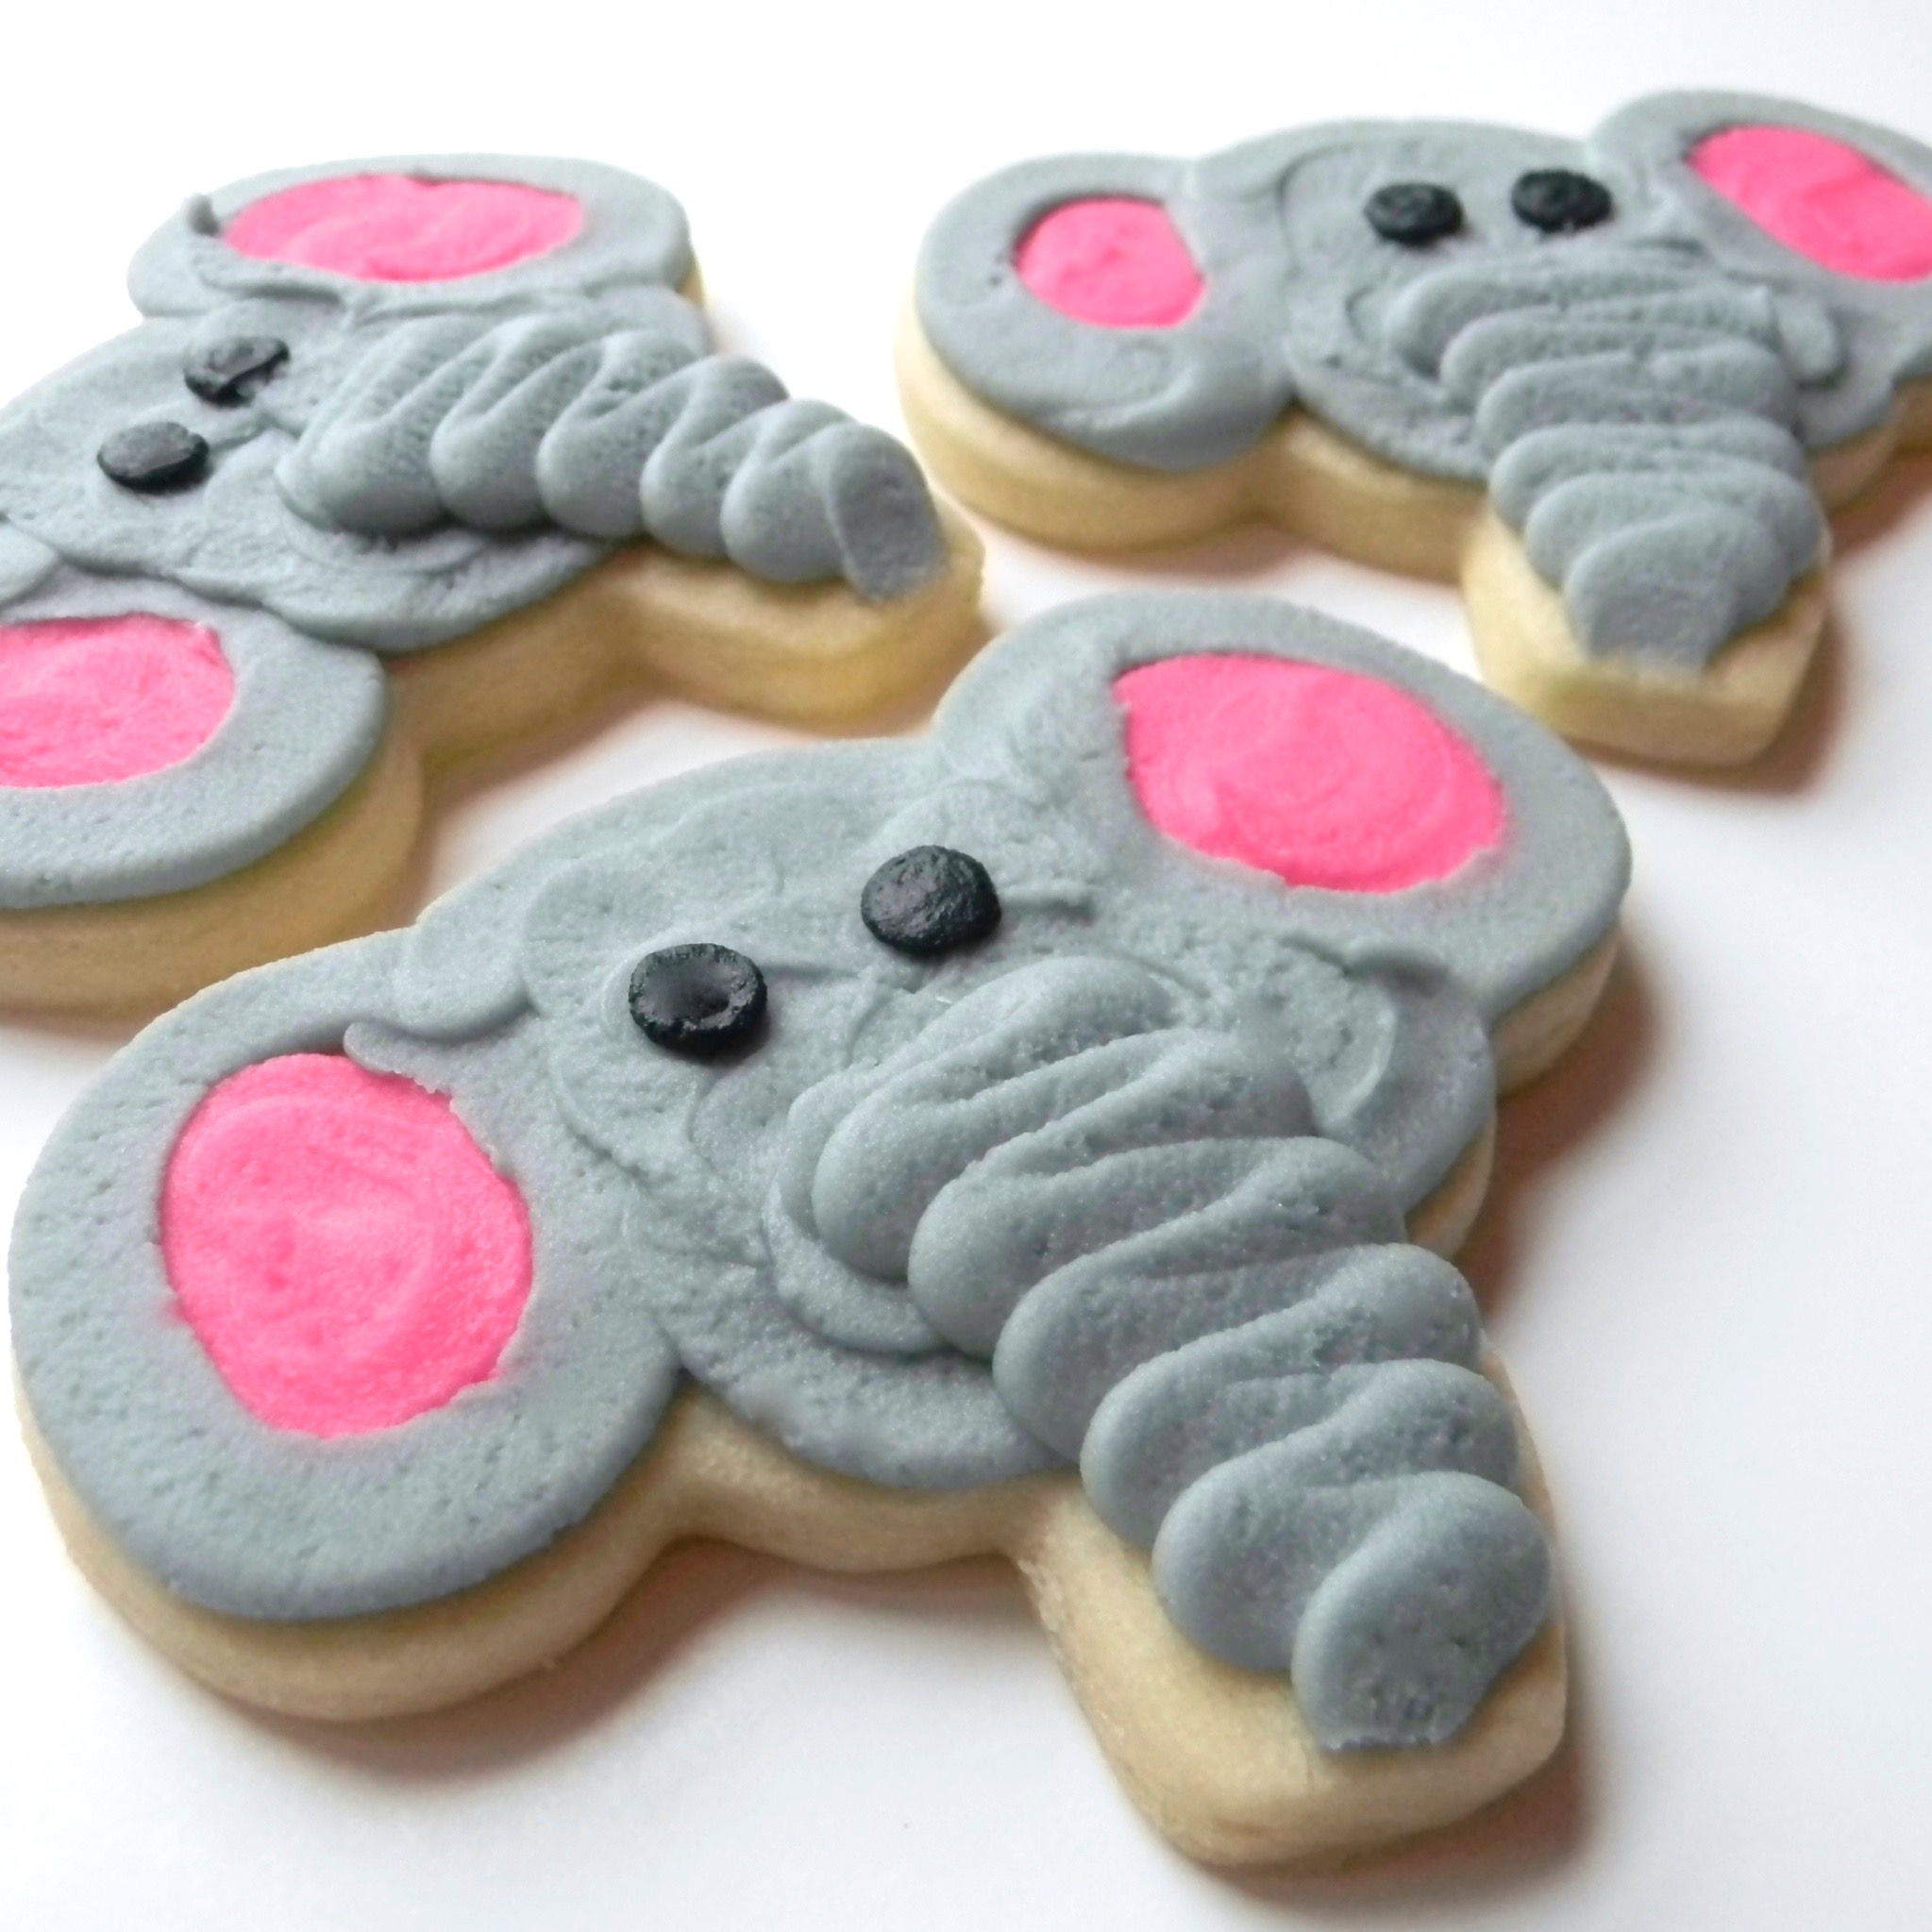 Animal.cookie.Elephant.jpg